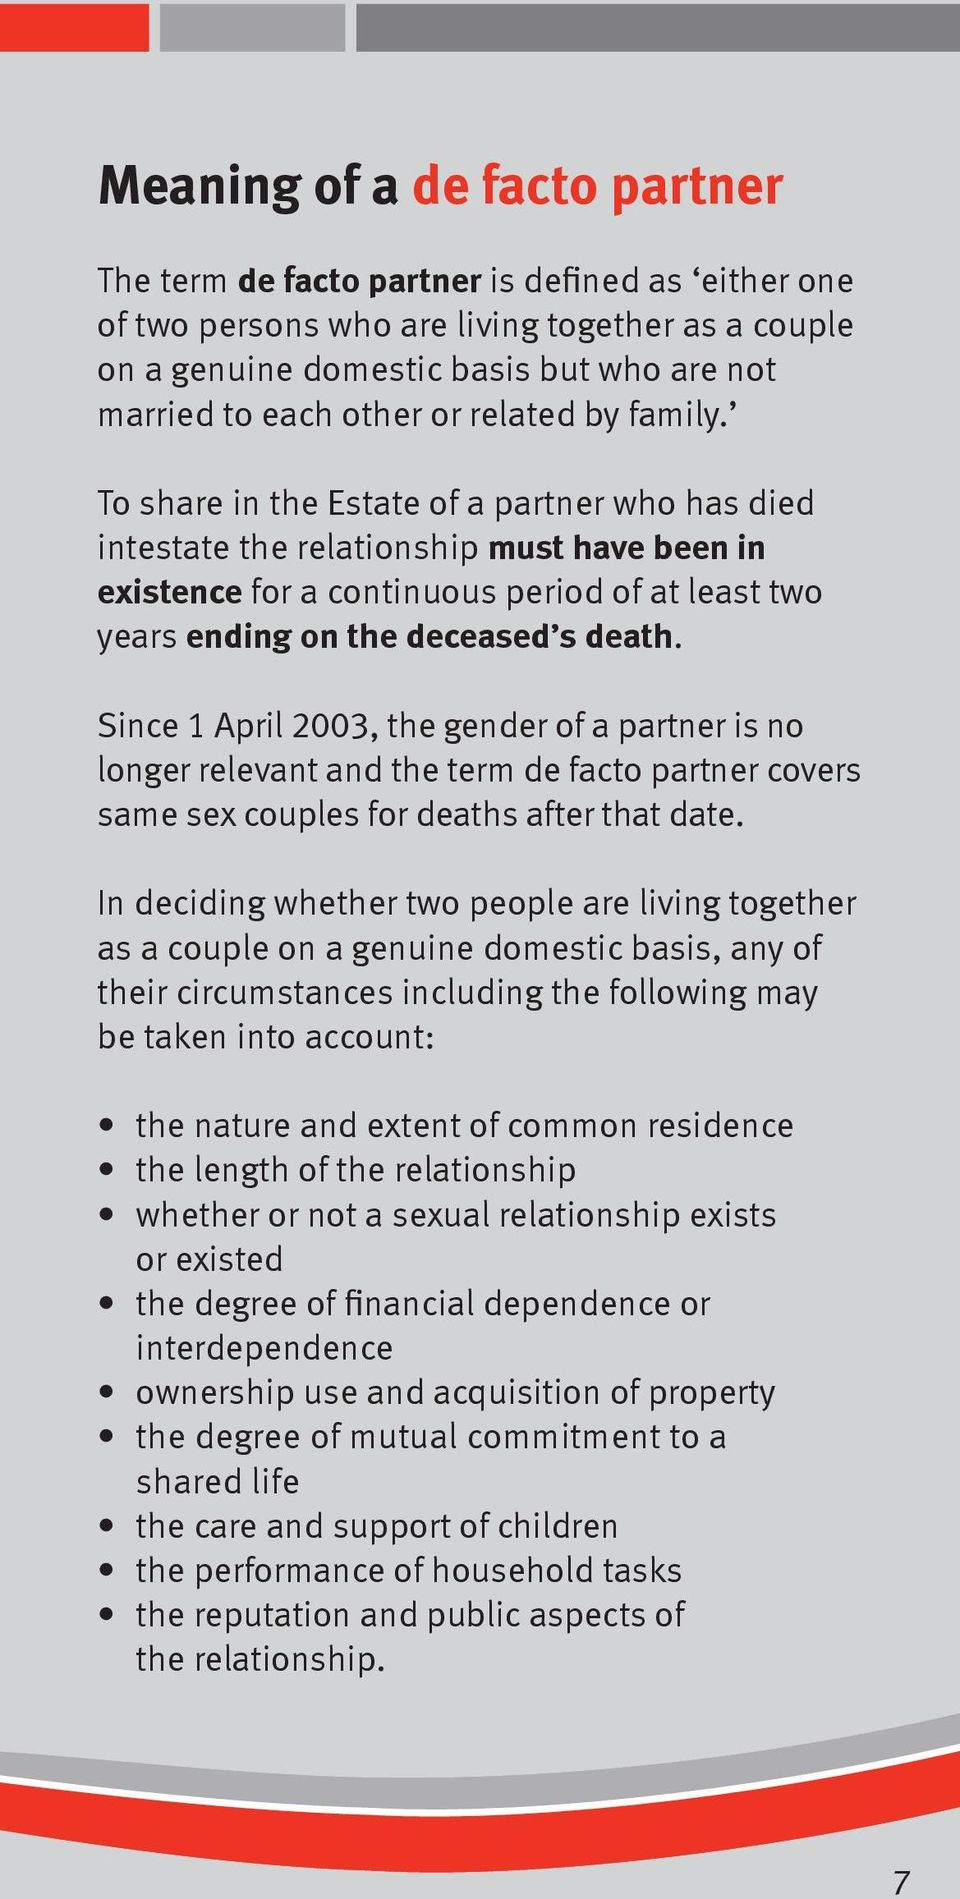 To share in the Estate of a partner who has died intestate the relationship must have been in existence for a continuous period of at least two years ending on the deceased s death.